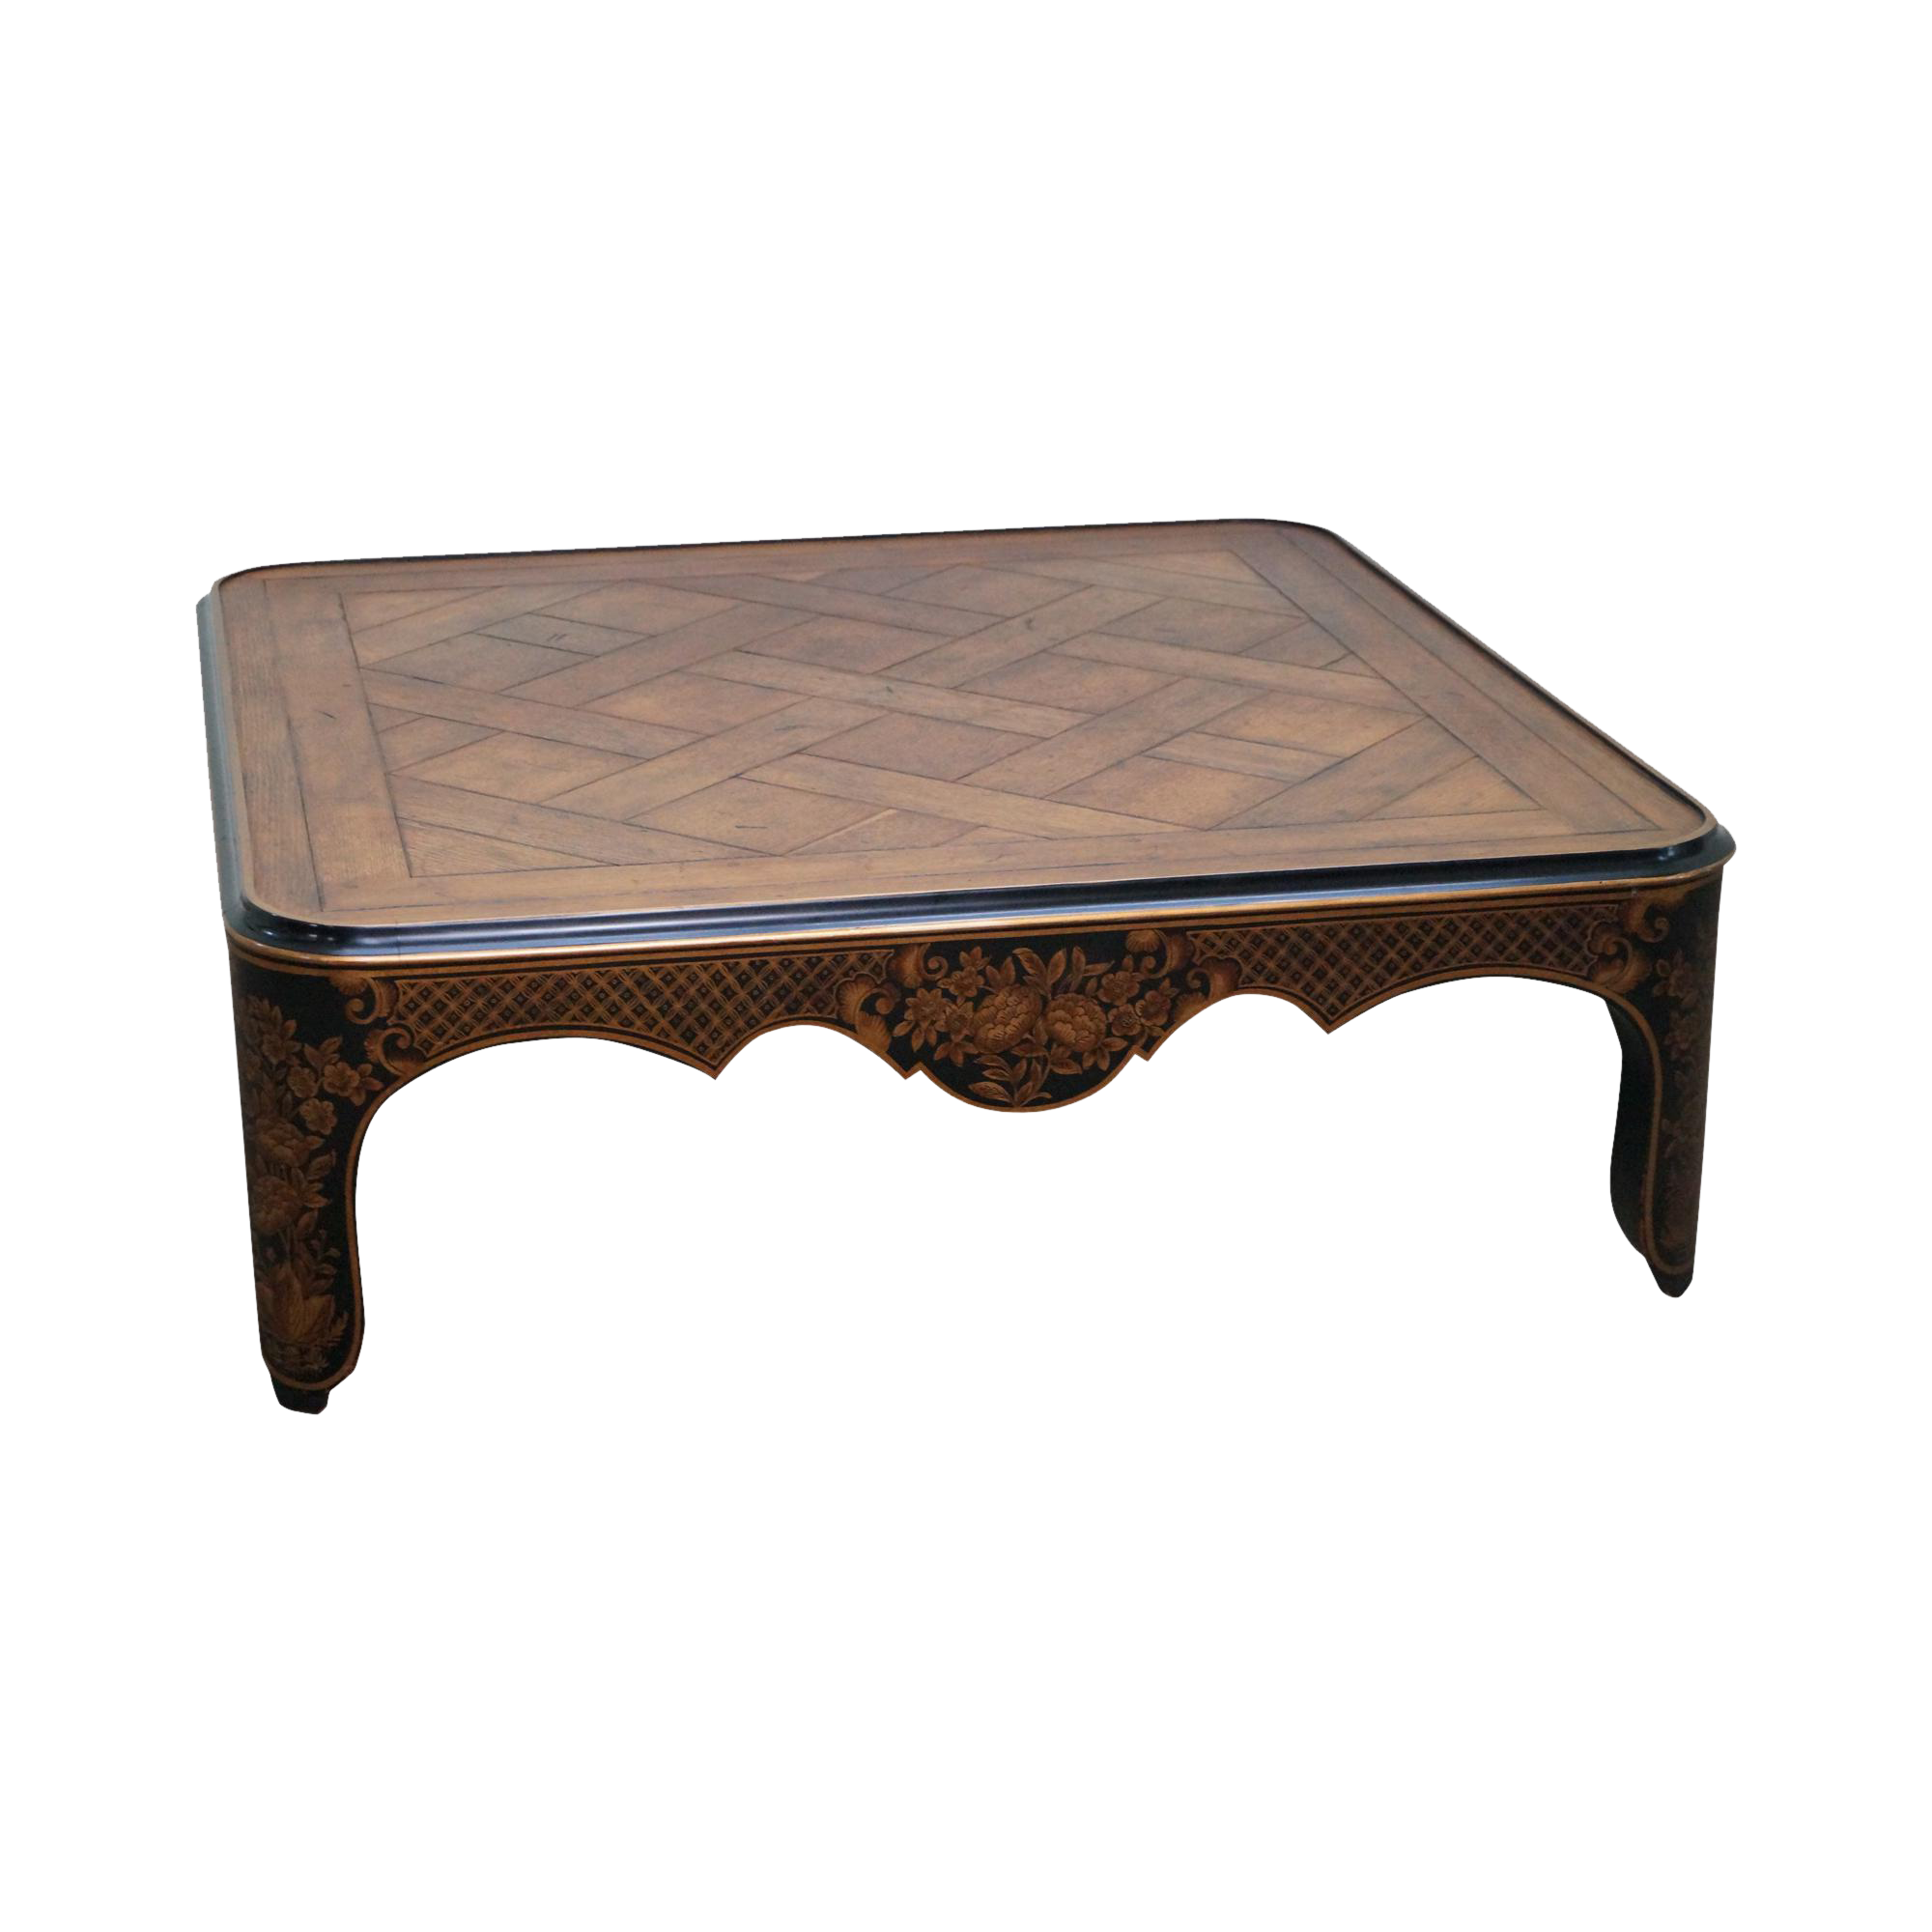 Baker Chinoiserie Painted Parquet Top Square Coffee Table